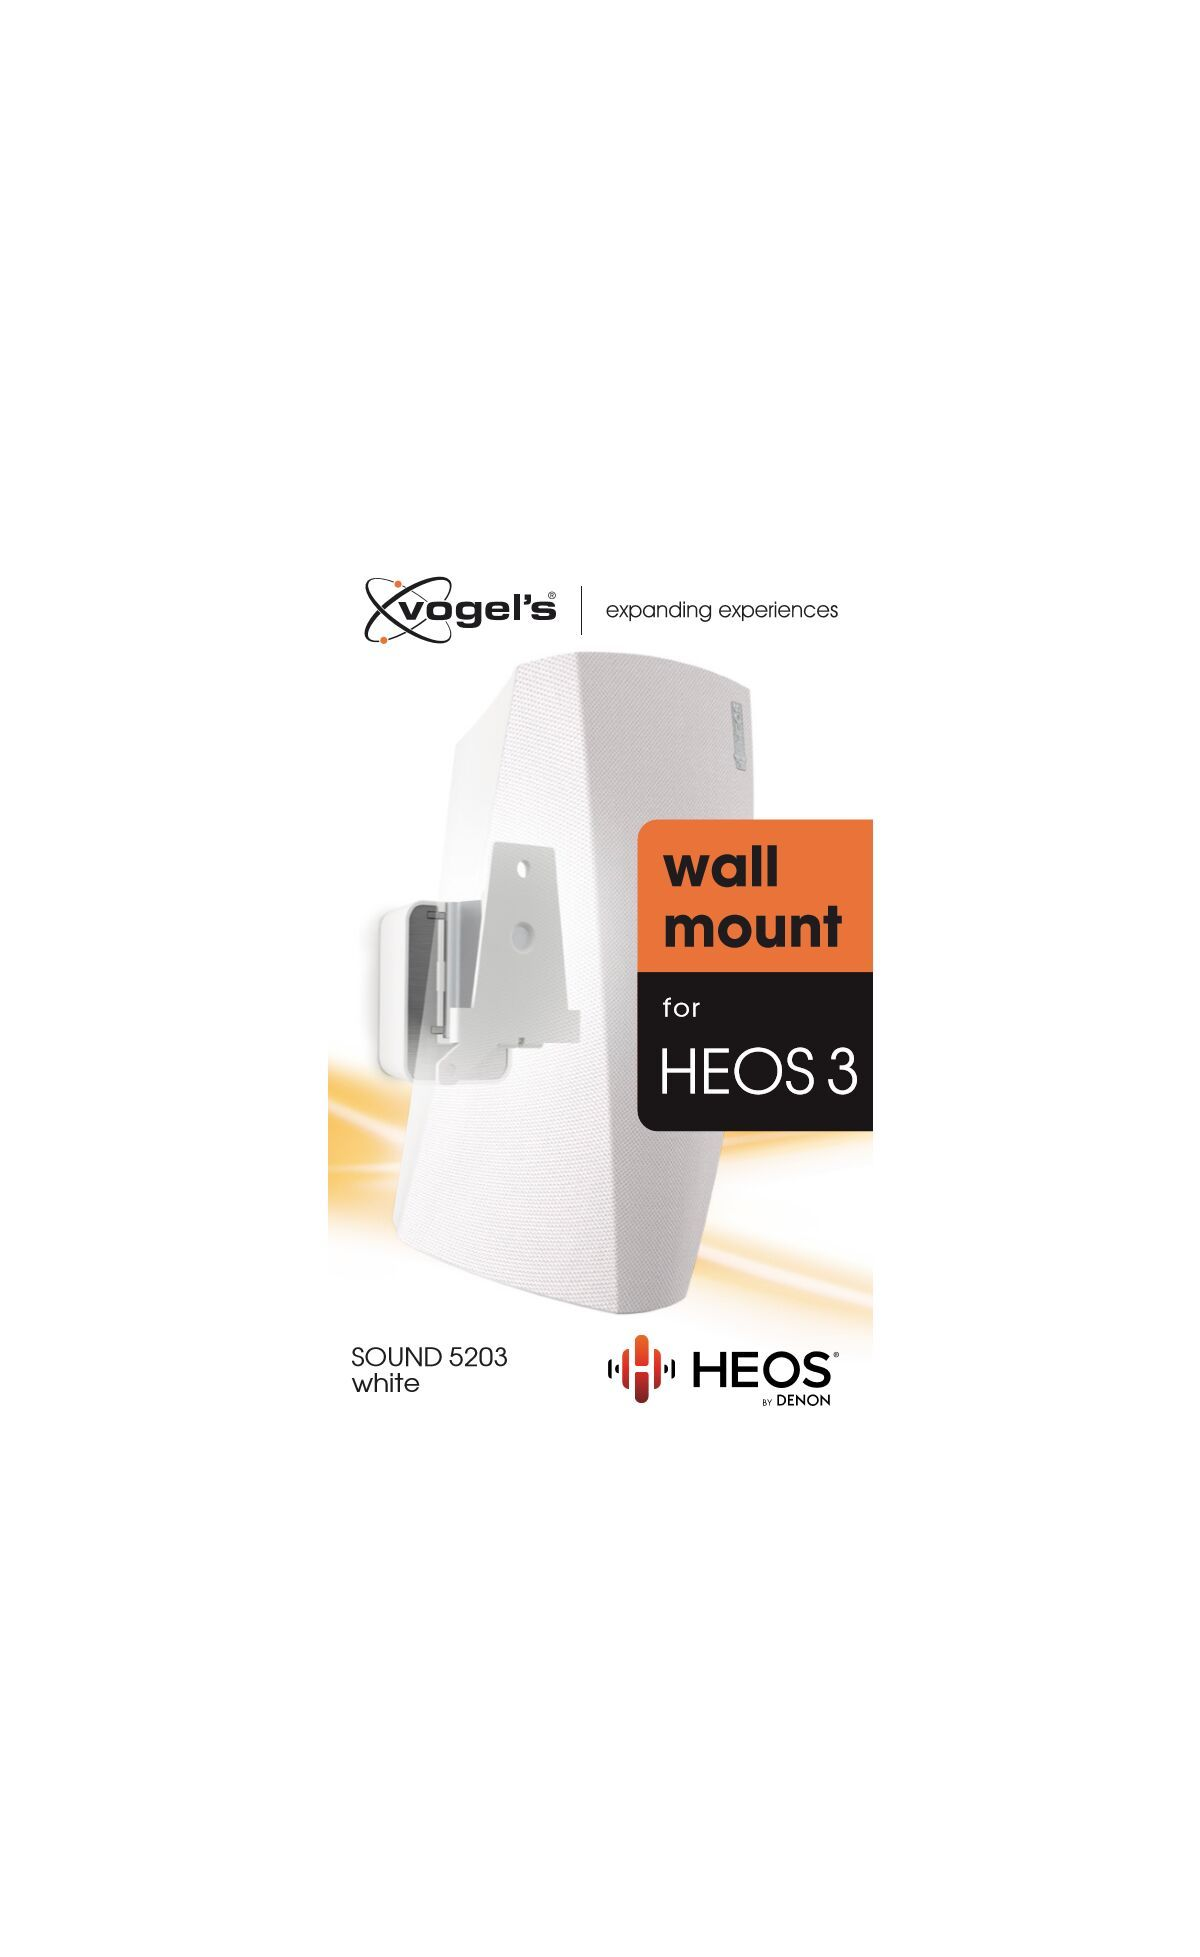 Vogel's SOUND 5203 Speaker Wall Mount for Denon HEOS 3 (white) - Packaging front